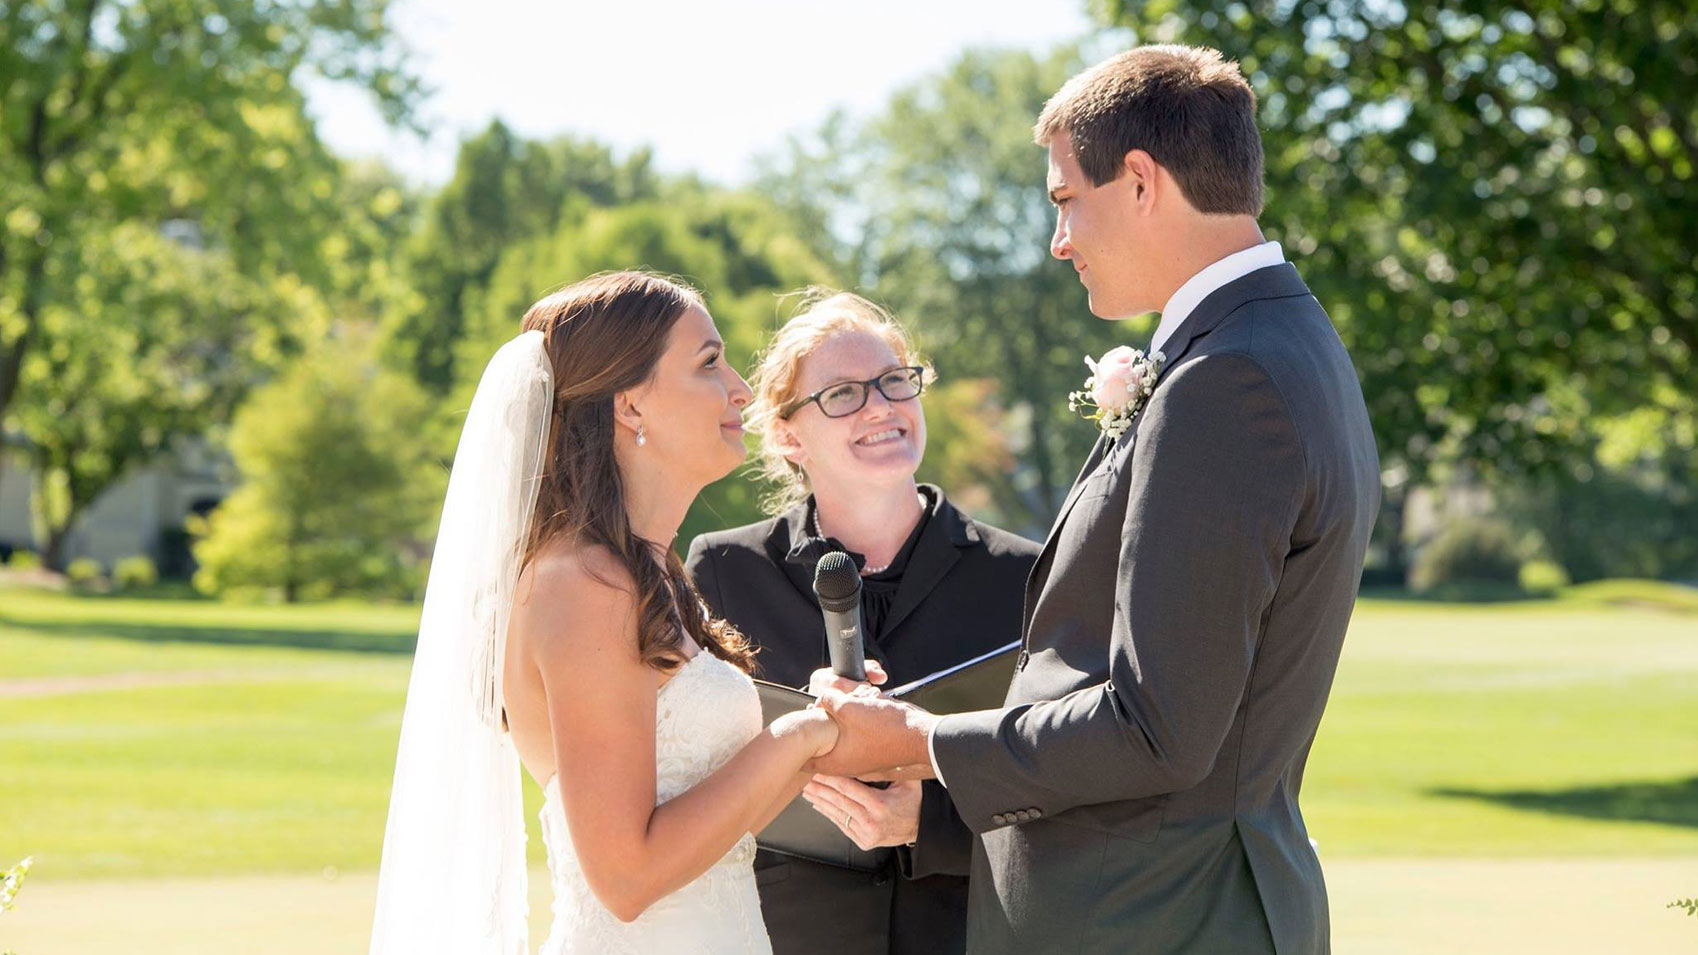 Wedding Planning and Officiant | Cherry Tree Inn | The Groundhog Day House | IL